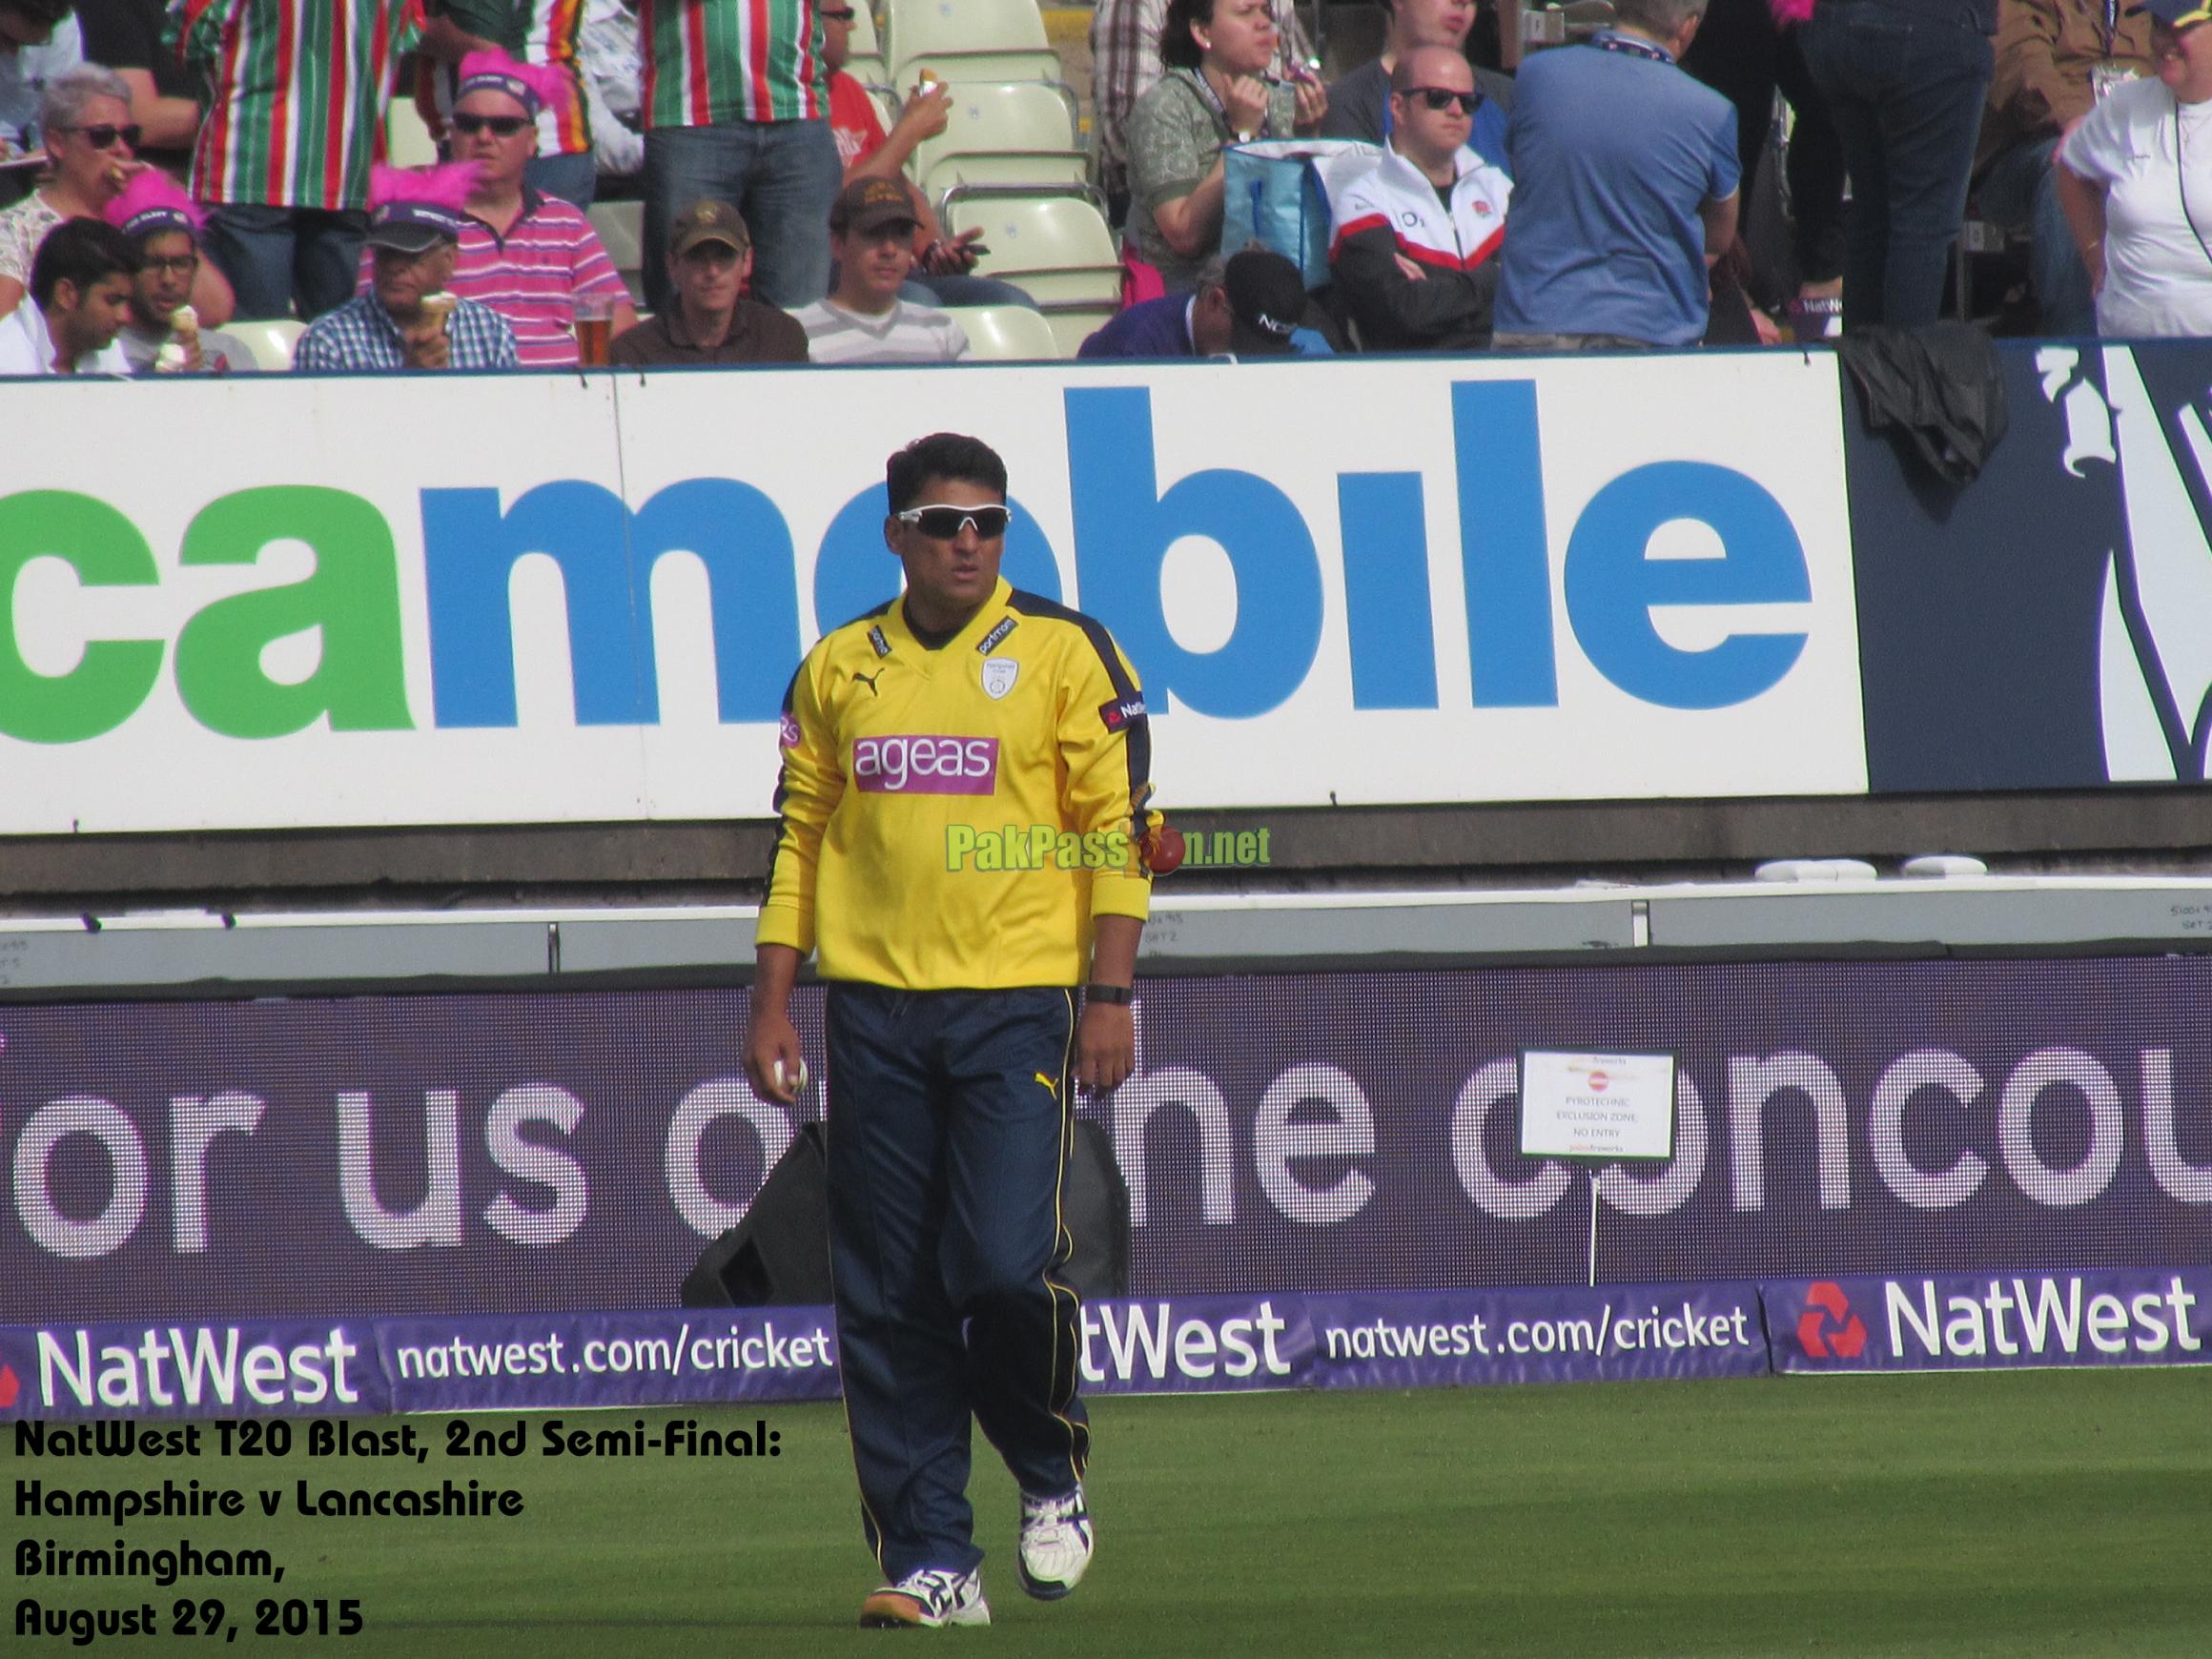 Pictures from NatWest T20 Blast 2015 Finals Day